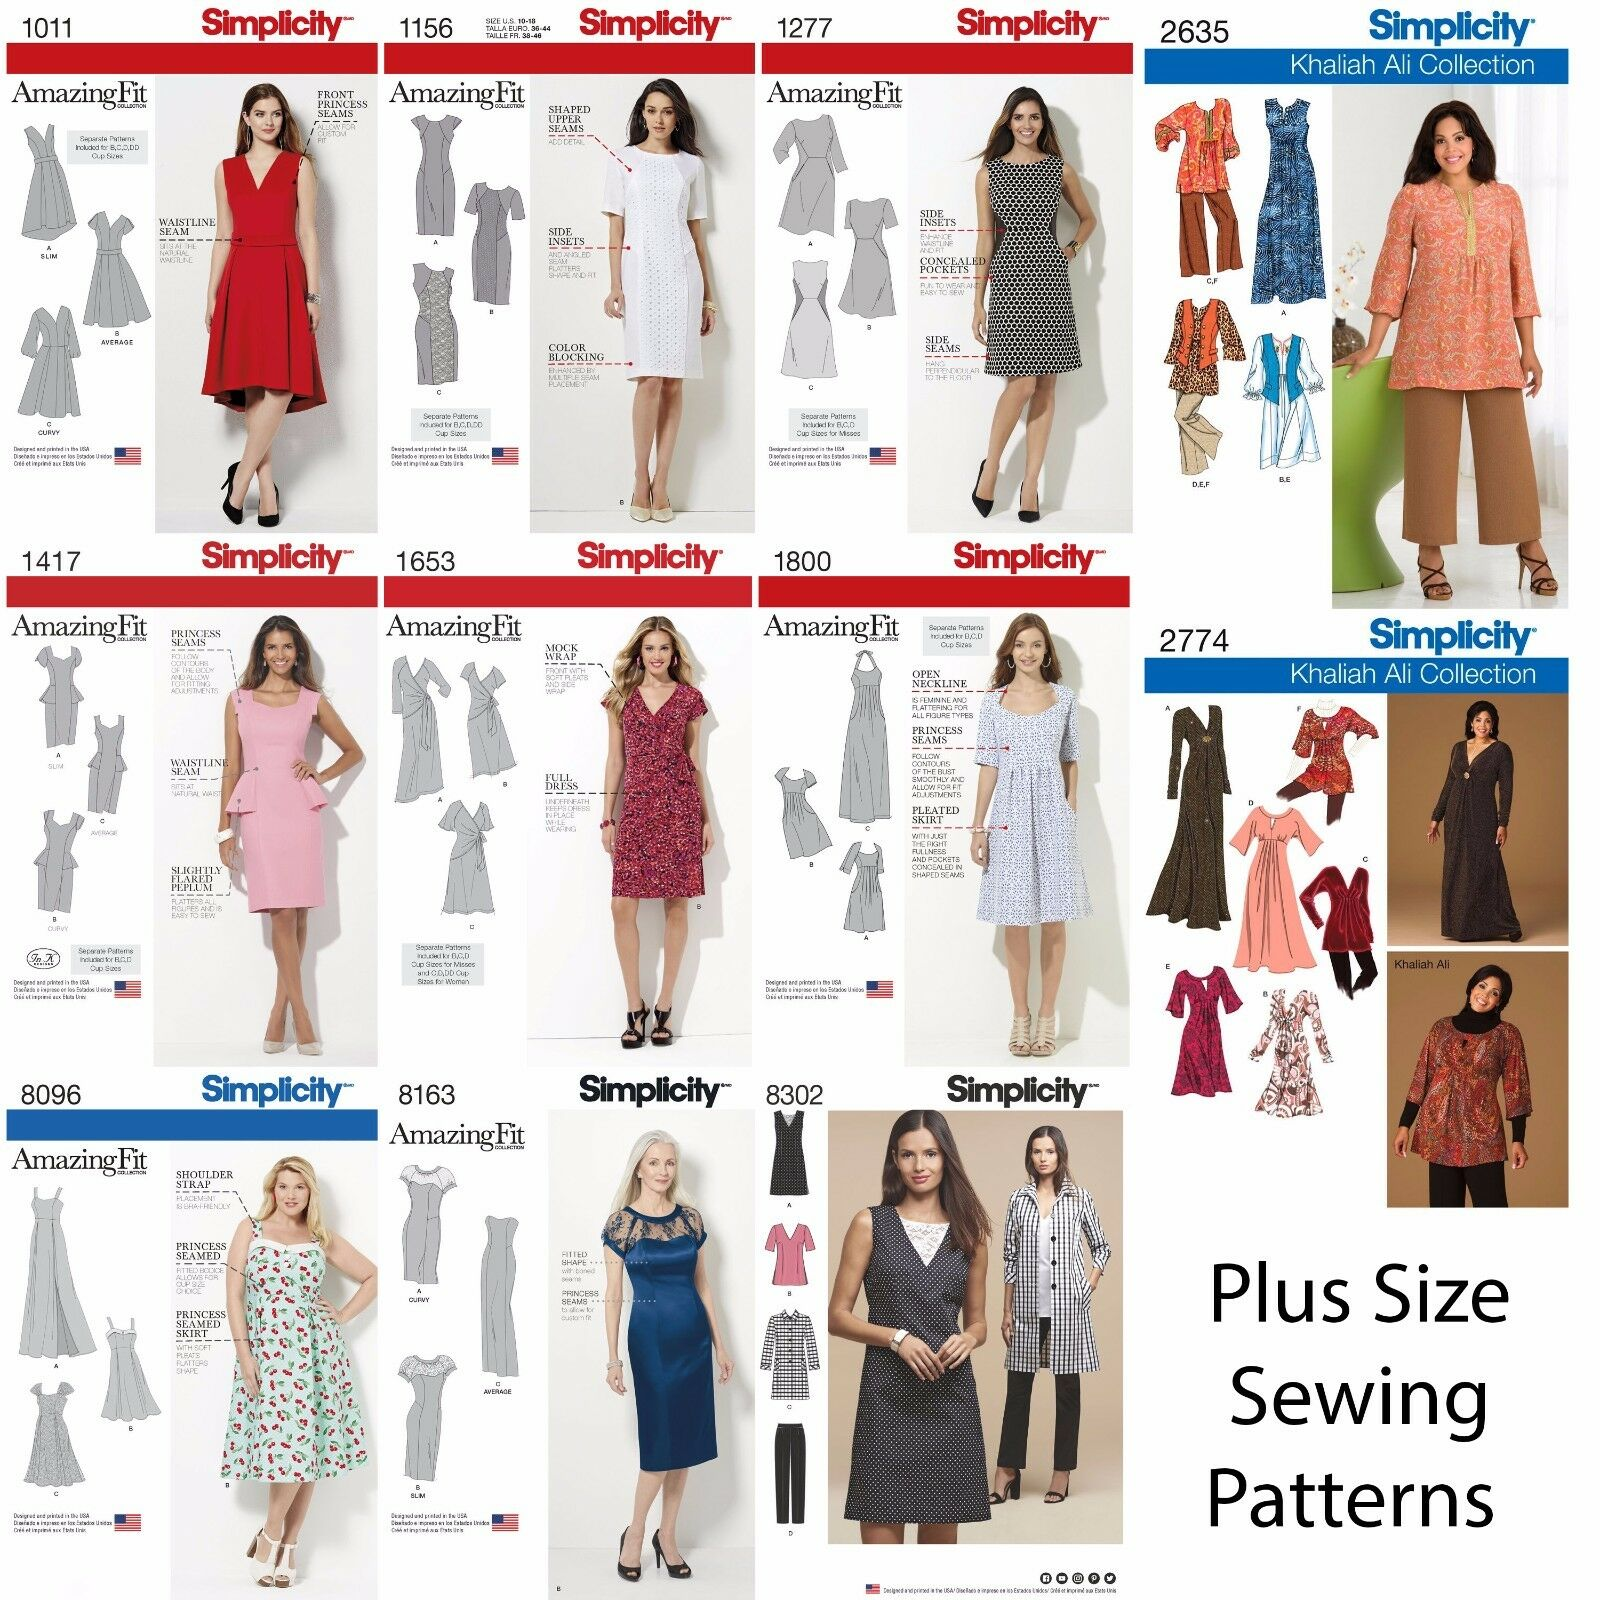 SIMPLICITY SEWING PATTERNS Women\'s Plus Large Size Clothing Amazing ...